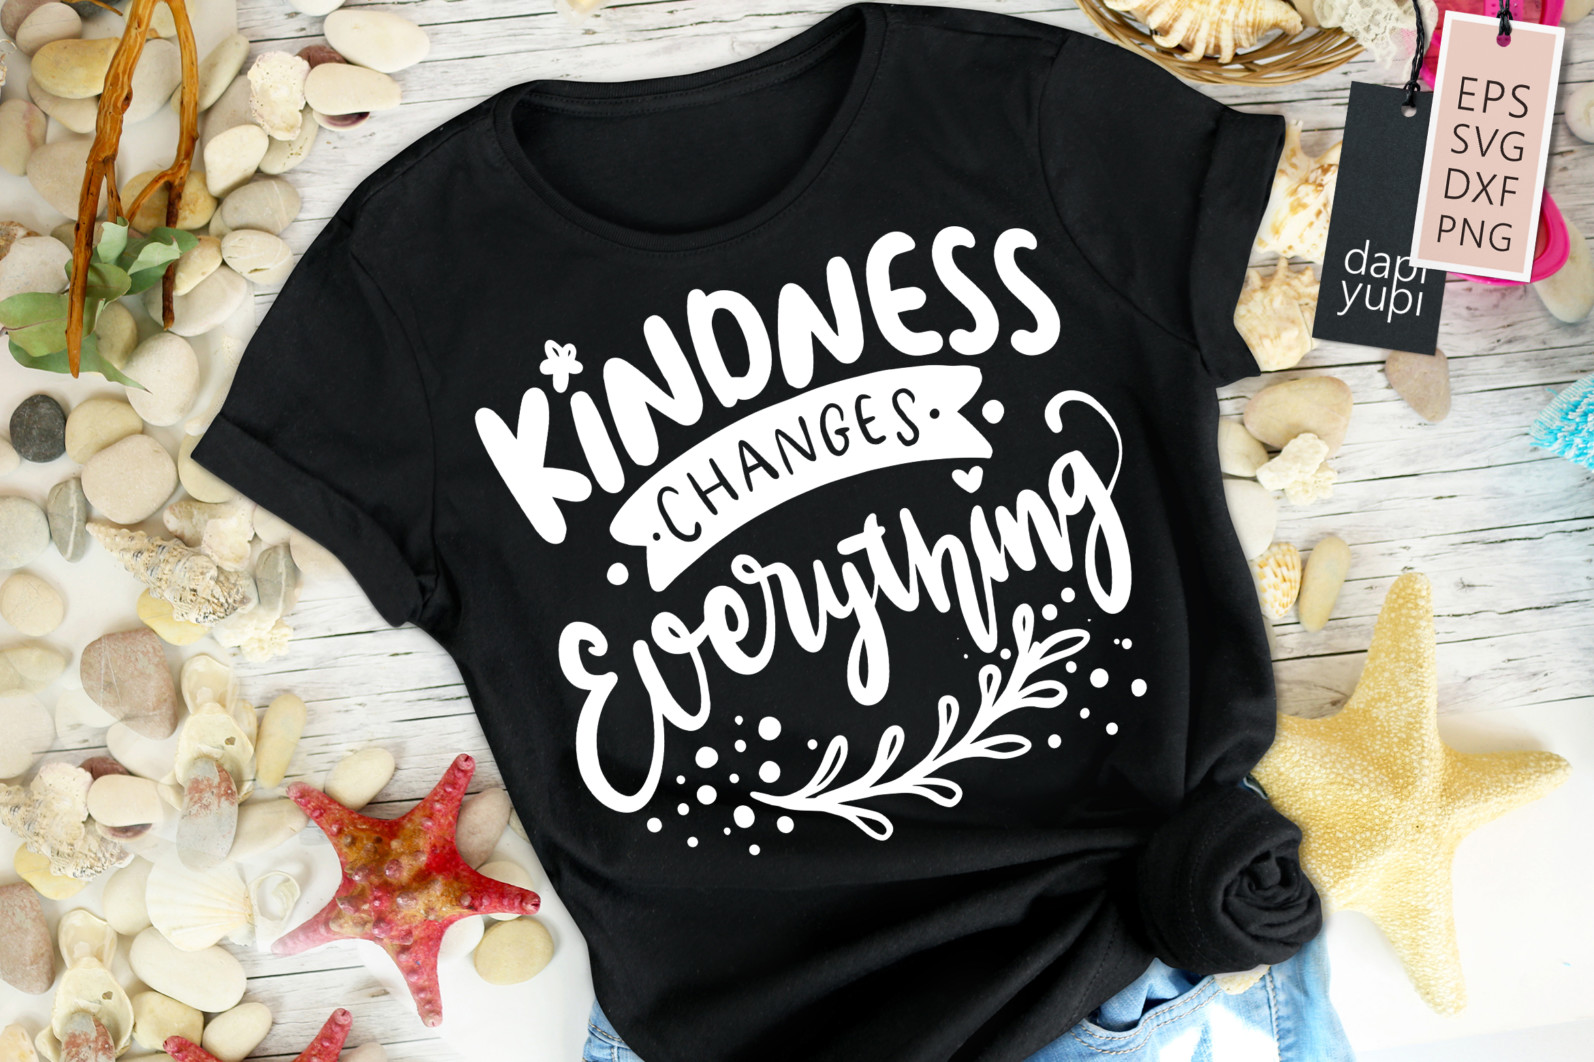 Kindness Lettering Quotes SVG Kindness Changes Everything - kindness8 -